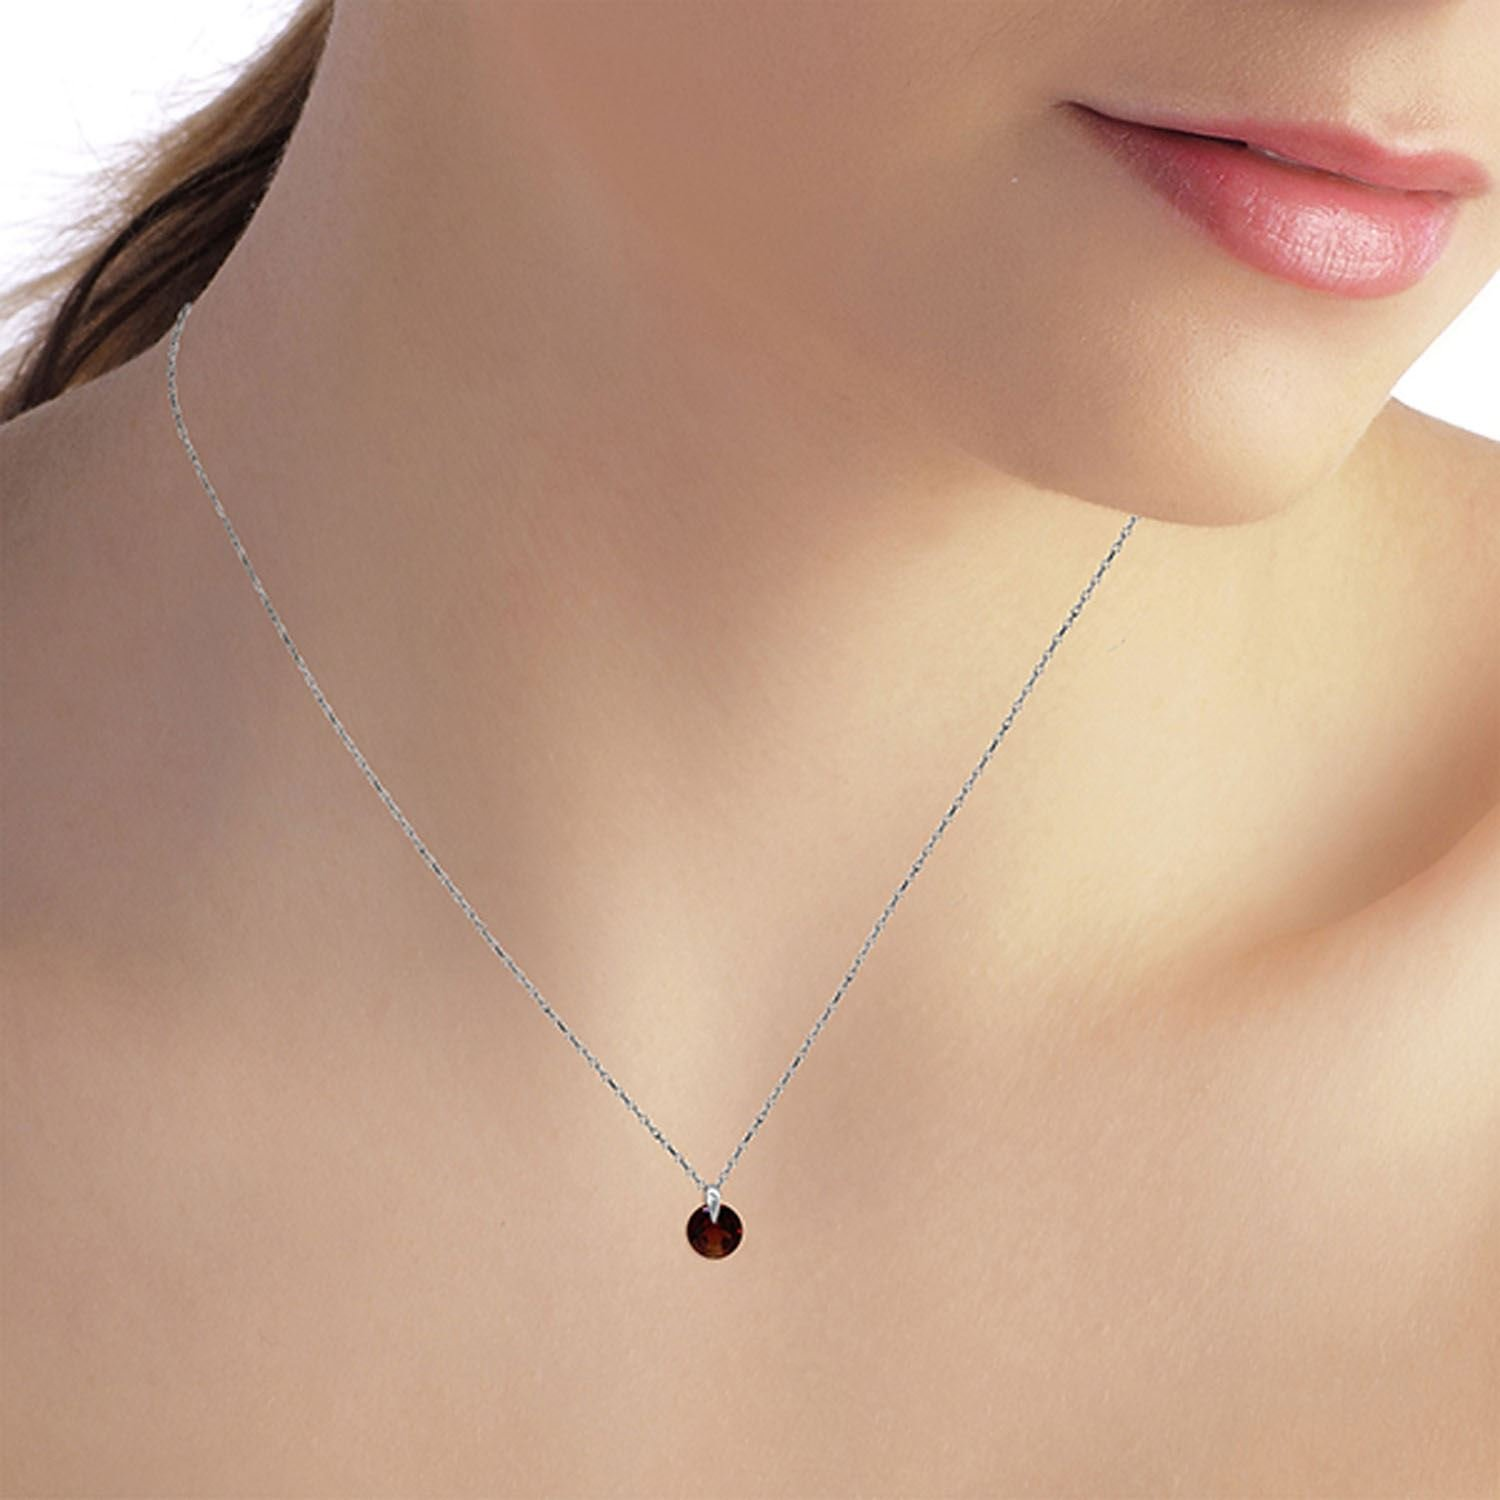 ALARRI 1 Carat 14K Solid White Gold Dont Rush Love Garnet Necklace with 18 Inch Chain Length